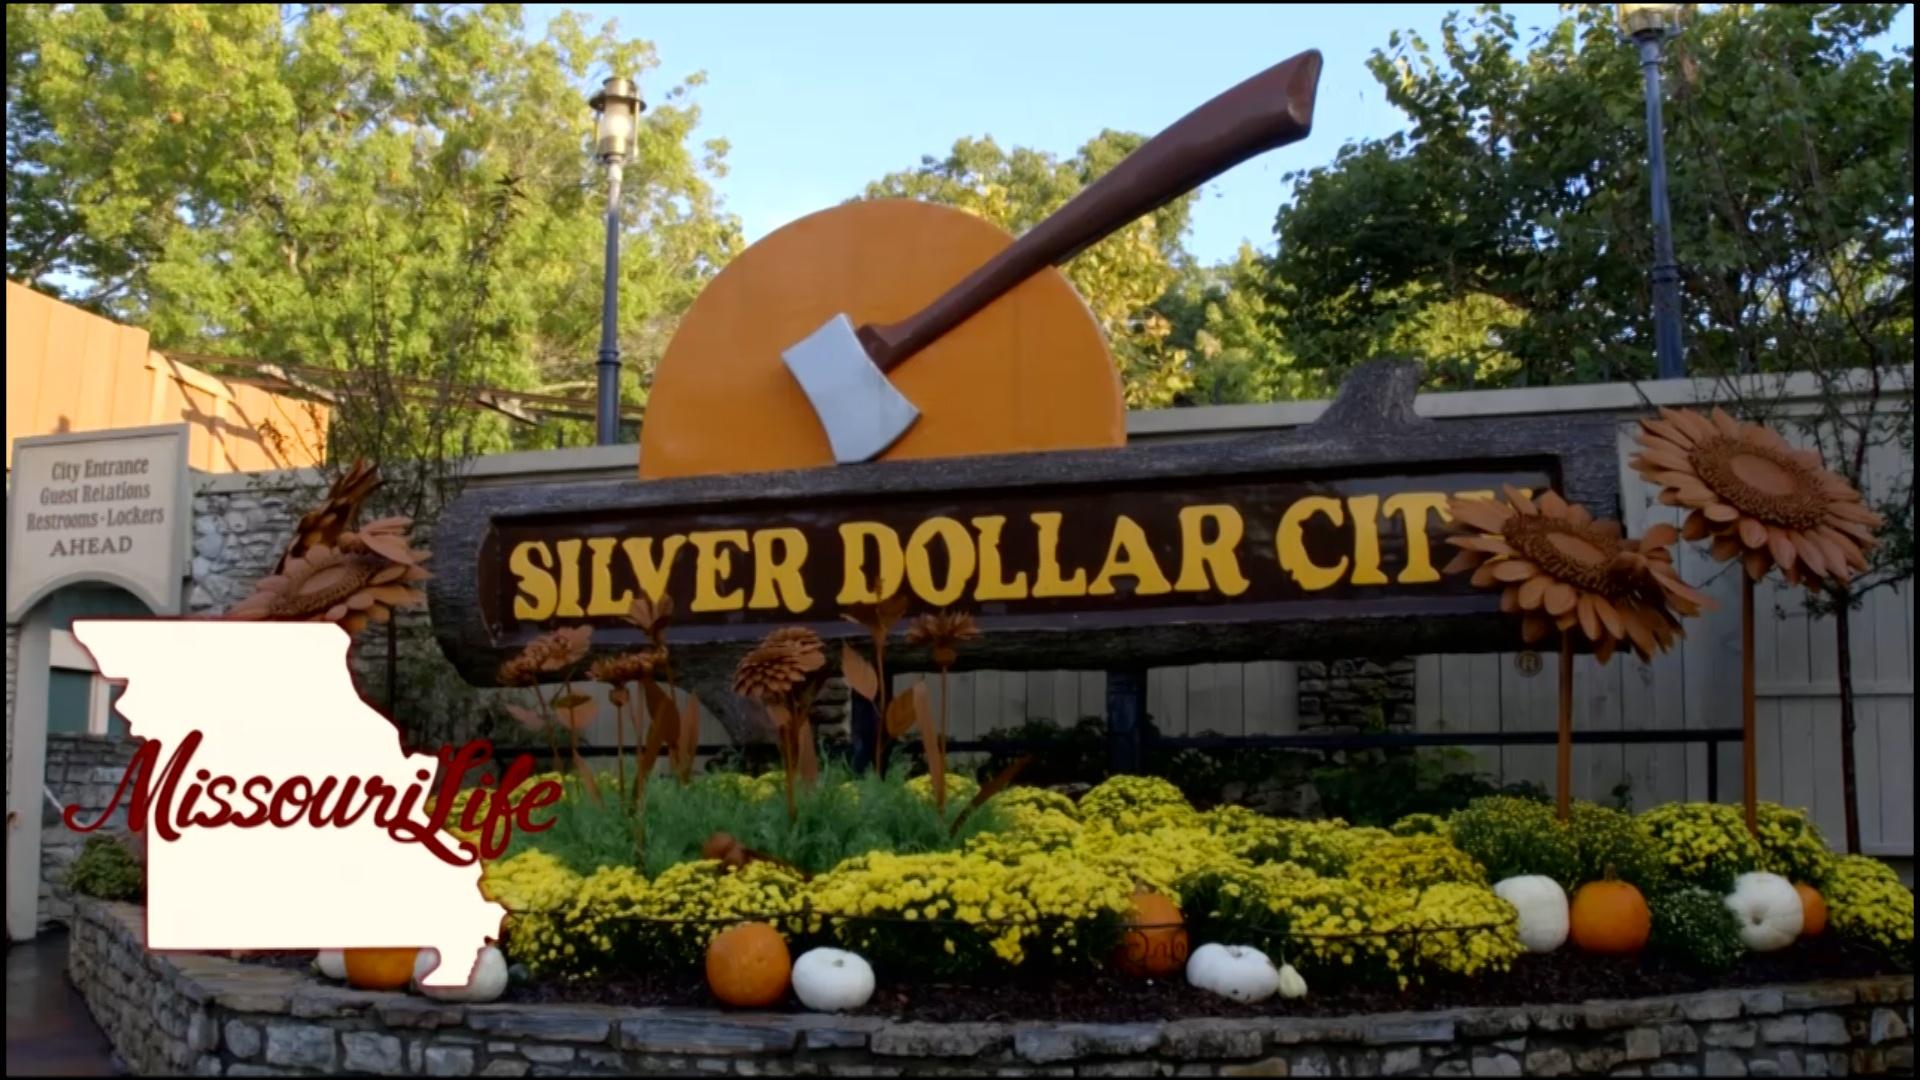 Missouri Life #205 Silver Dollar City